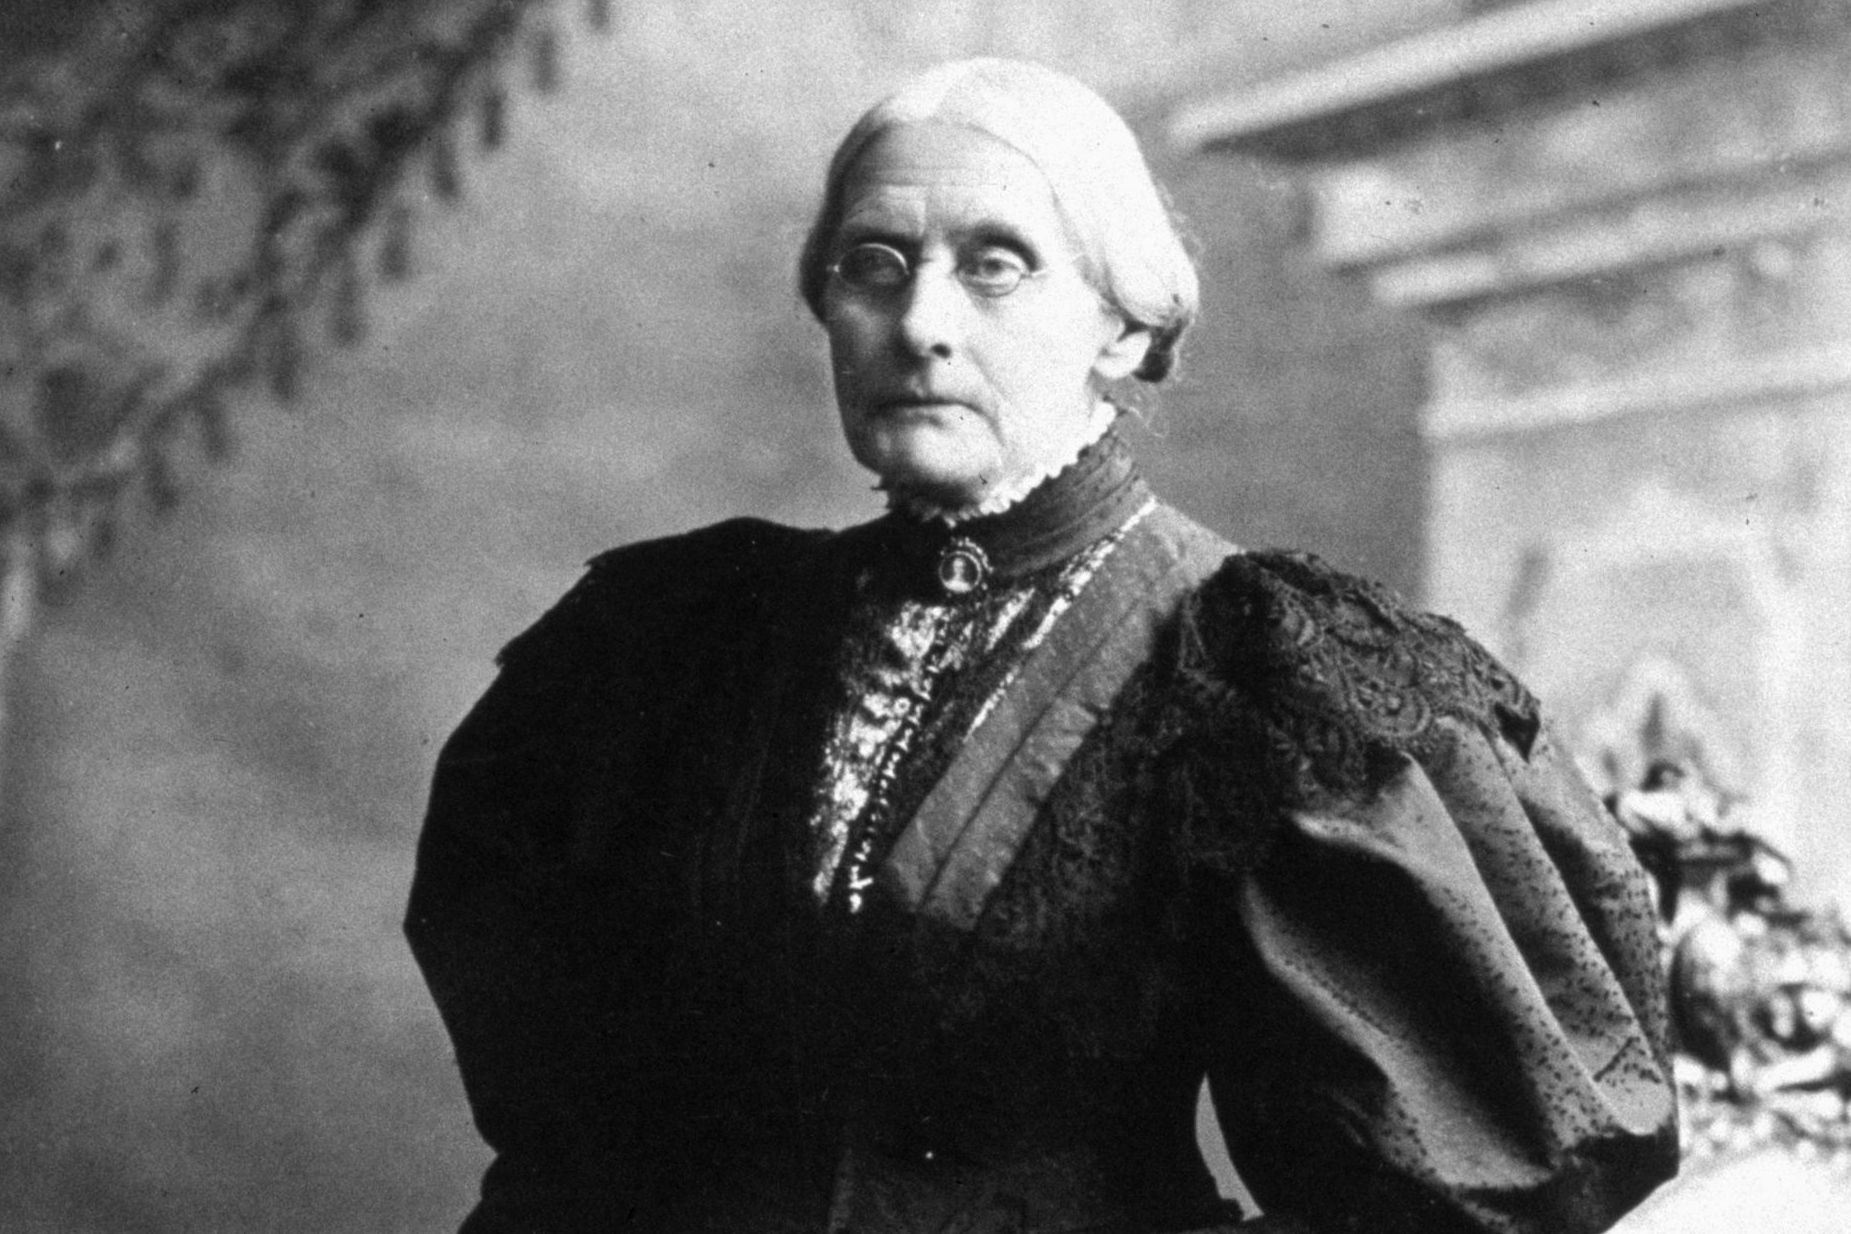 a biography of susan brownell anthony an american social reformer and feminist It was on this date, february 15, 1820, that american feminist and social reformer susan b anthony was born susan brownell anthony in adams, massachusetts, into a strict quaker family.